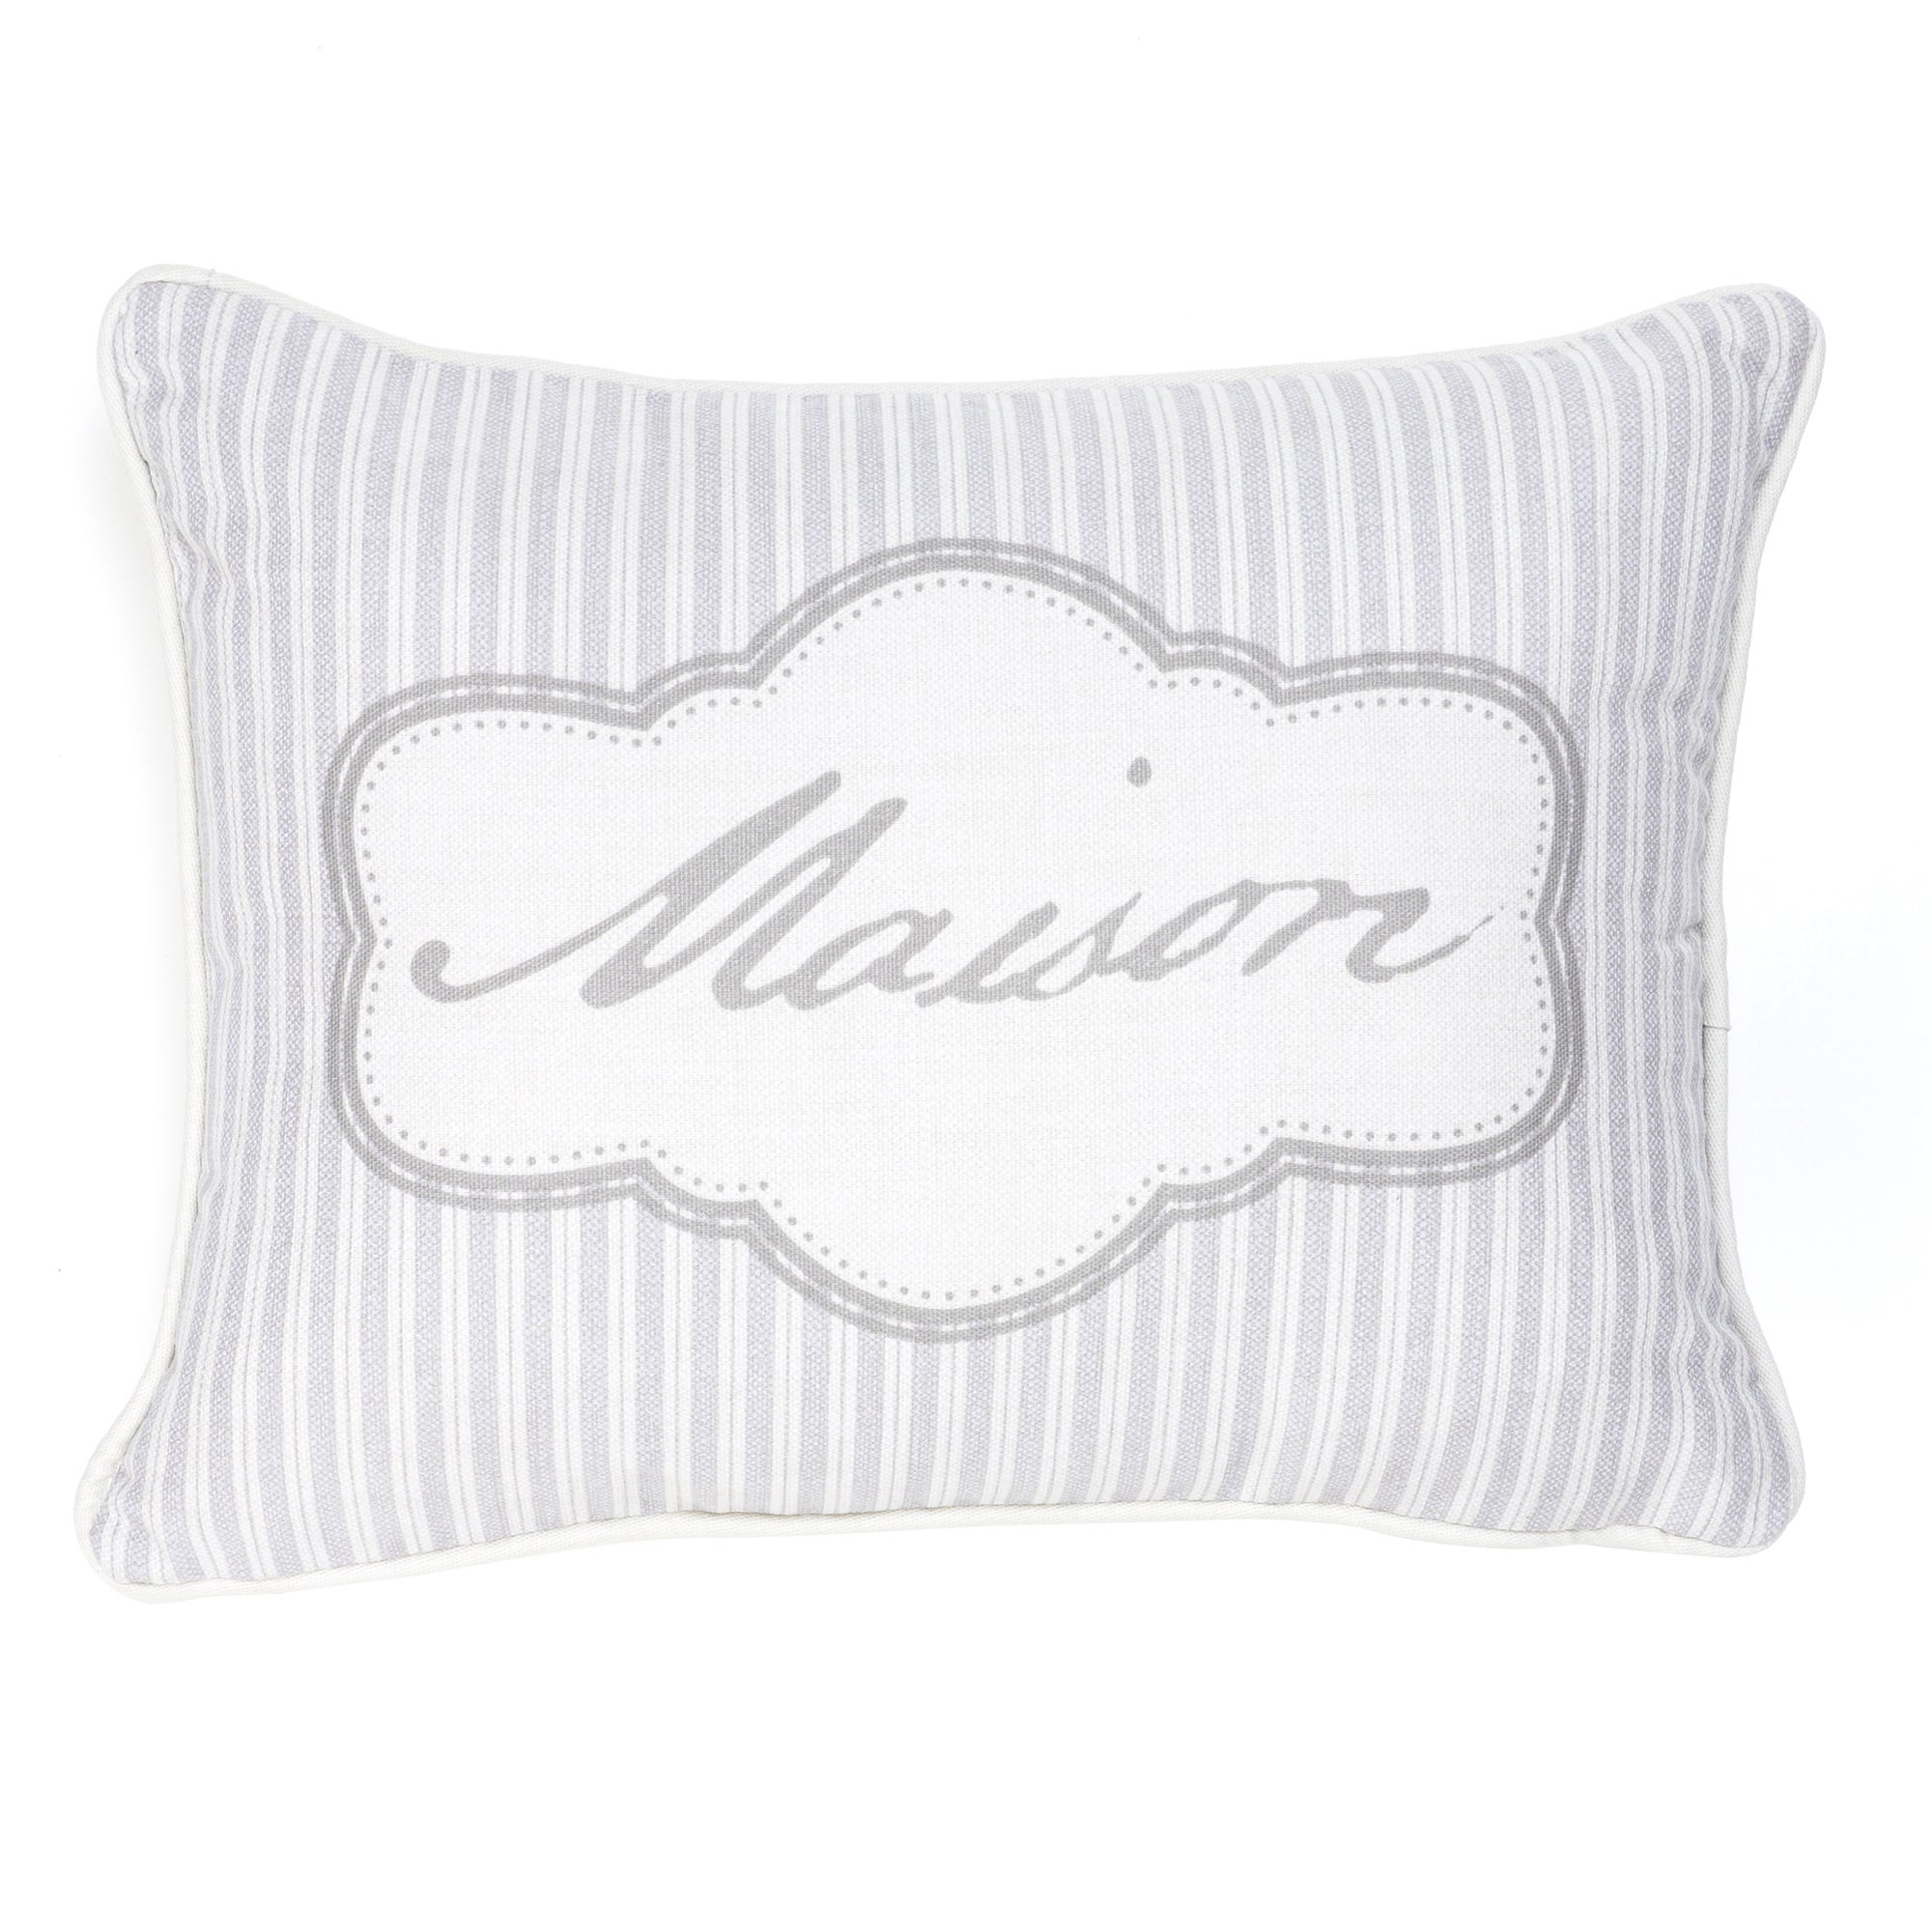 Maison Printed Cushion